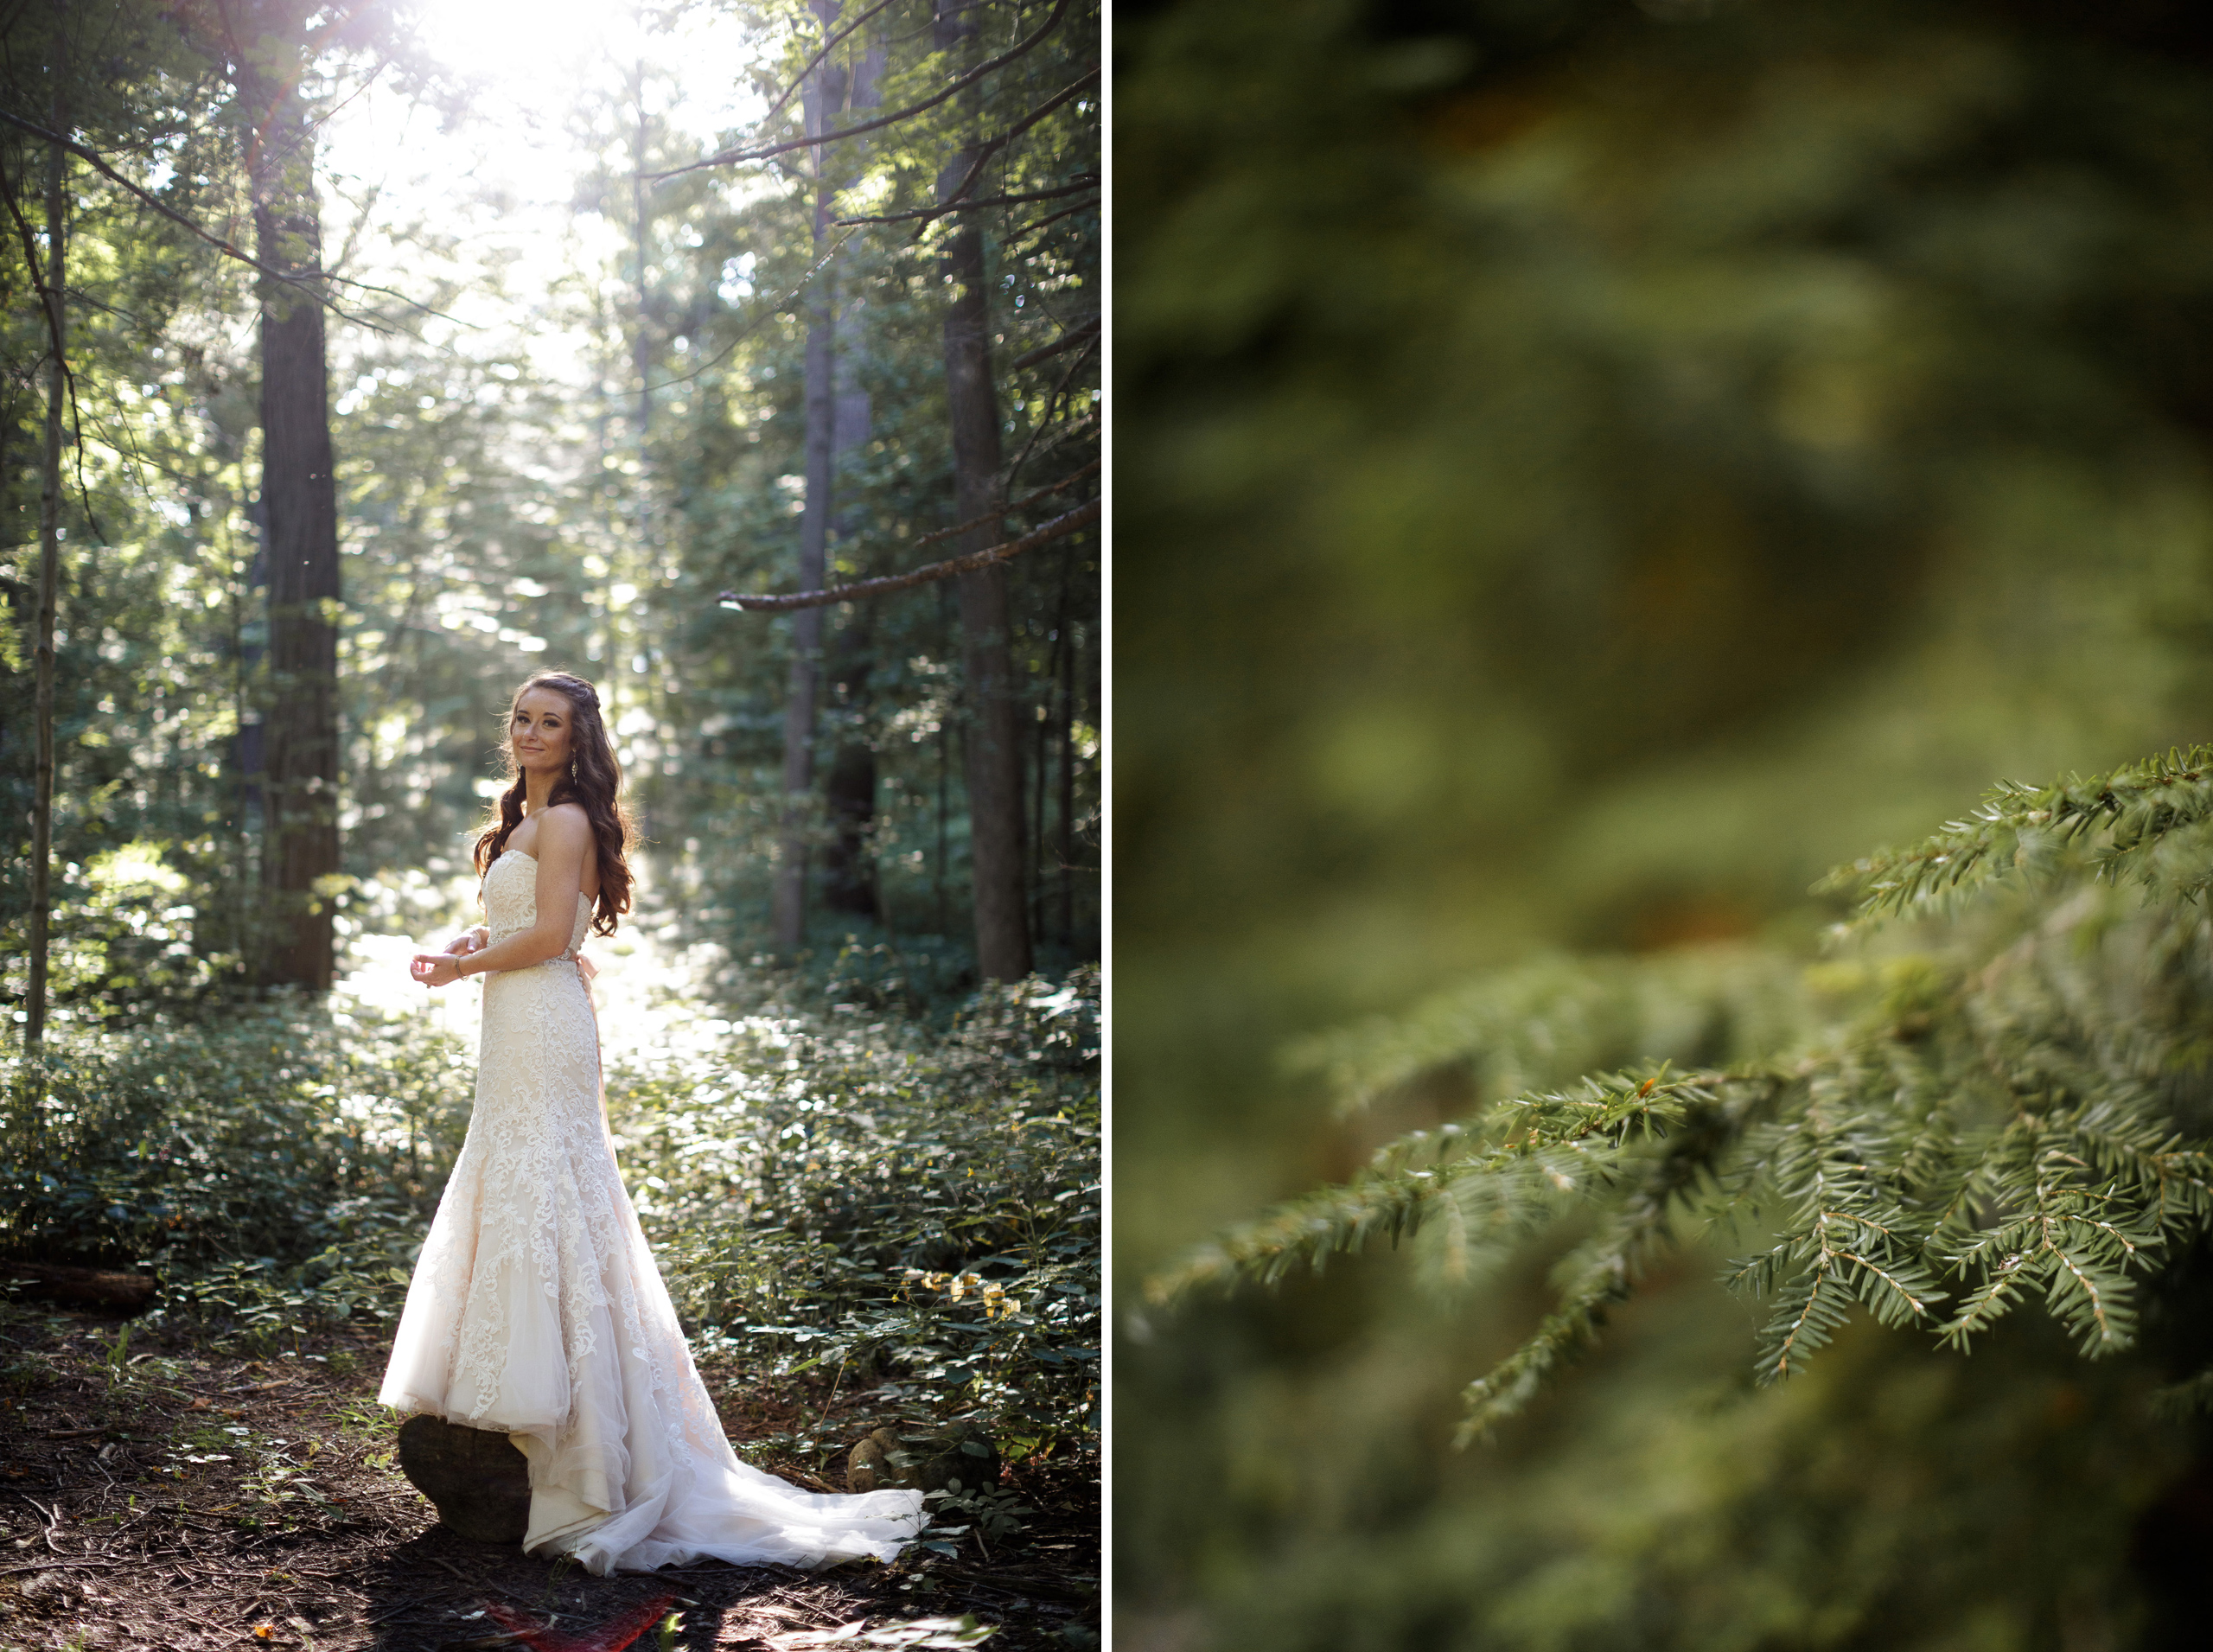 bride forest wedding photography niagara ontario balls falls rustic southcoast beauty